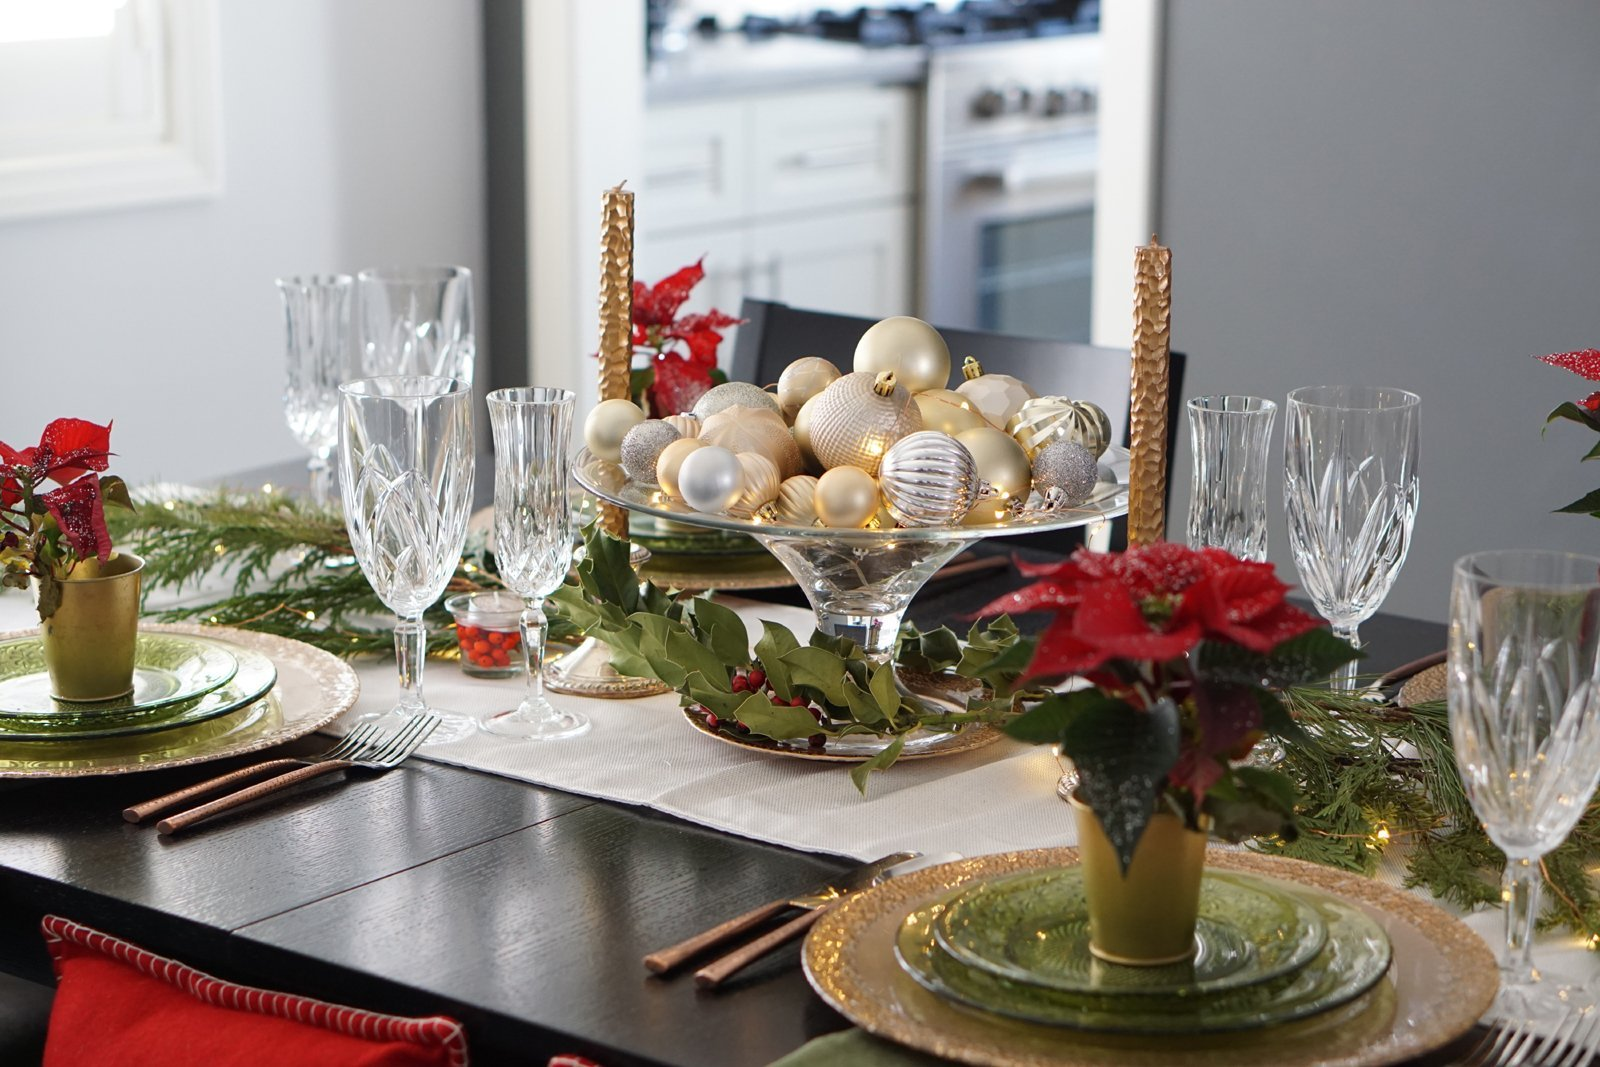 2017 Trend Alert: Antique Copper Holiday Tablescape to Wow Your Guests This Year